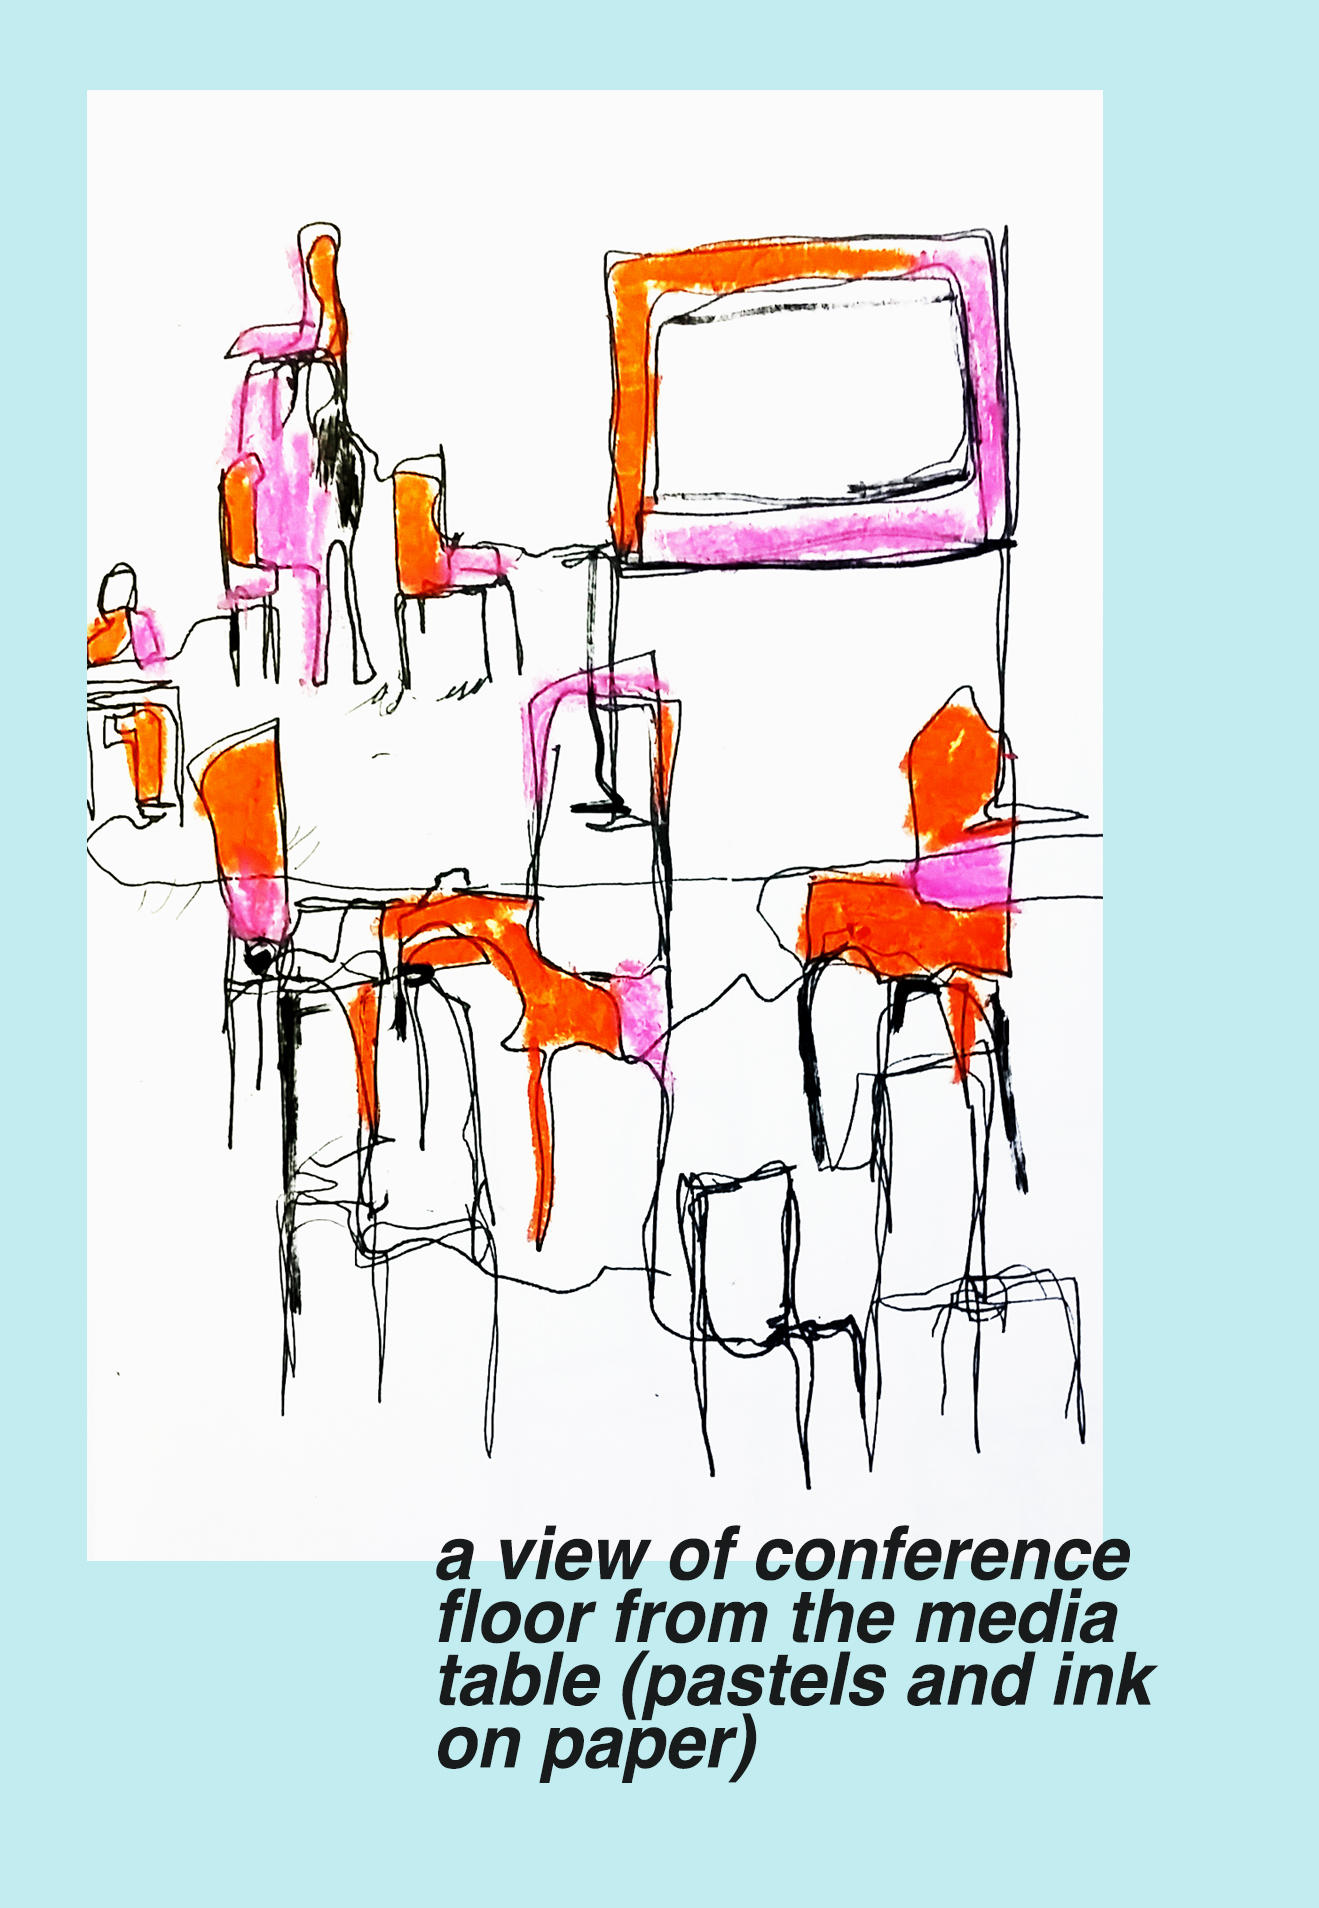 natcon-conference-floor-line-drawing